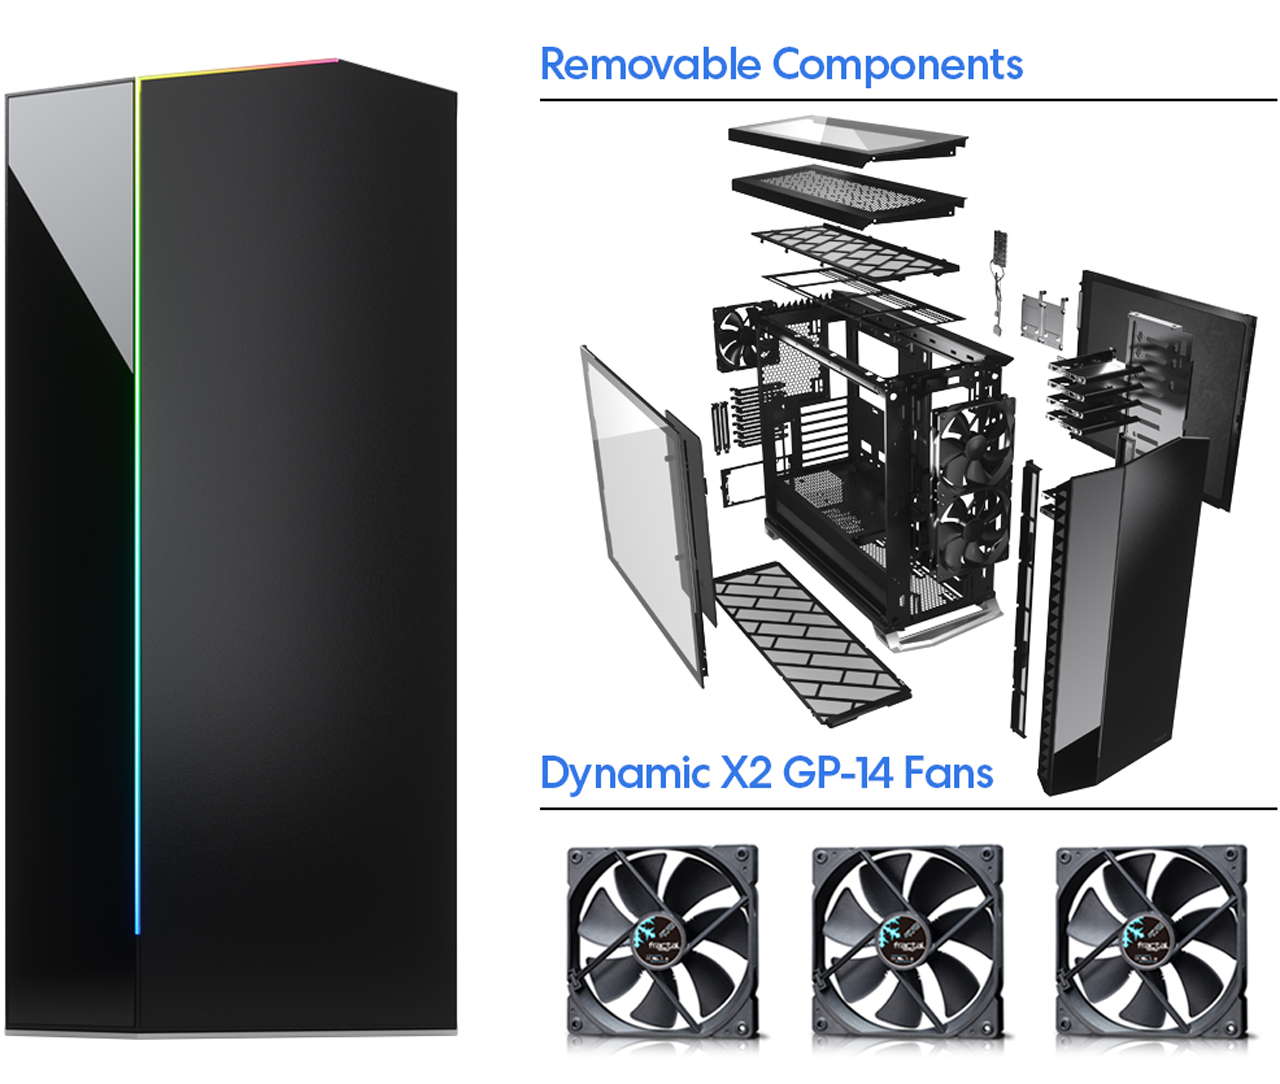 Fractal Vector RS and Removable Components and Dynamic X2 GP-14 Fans